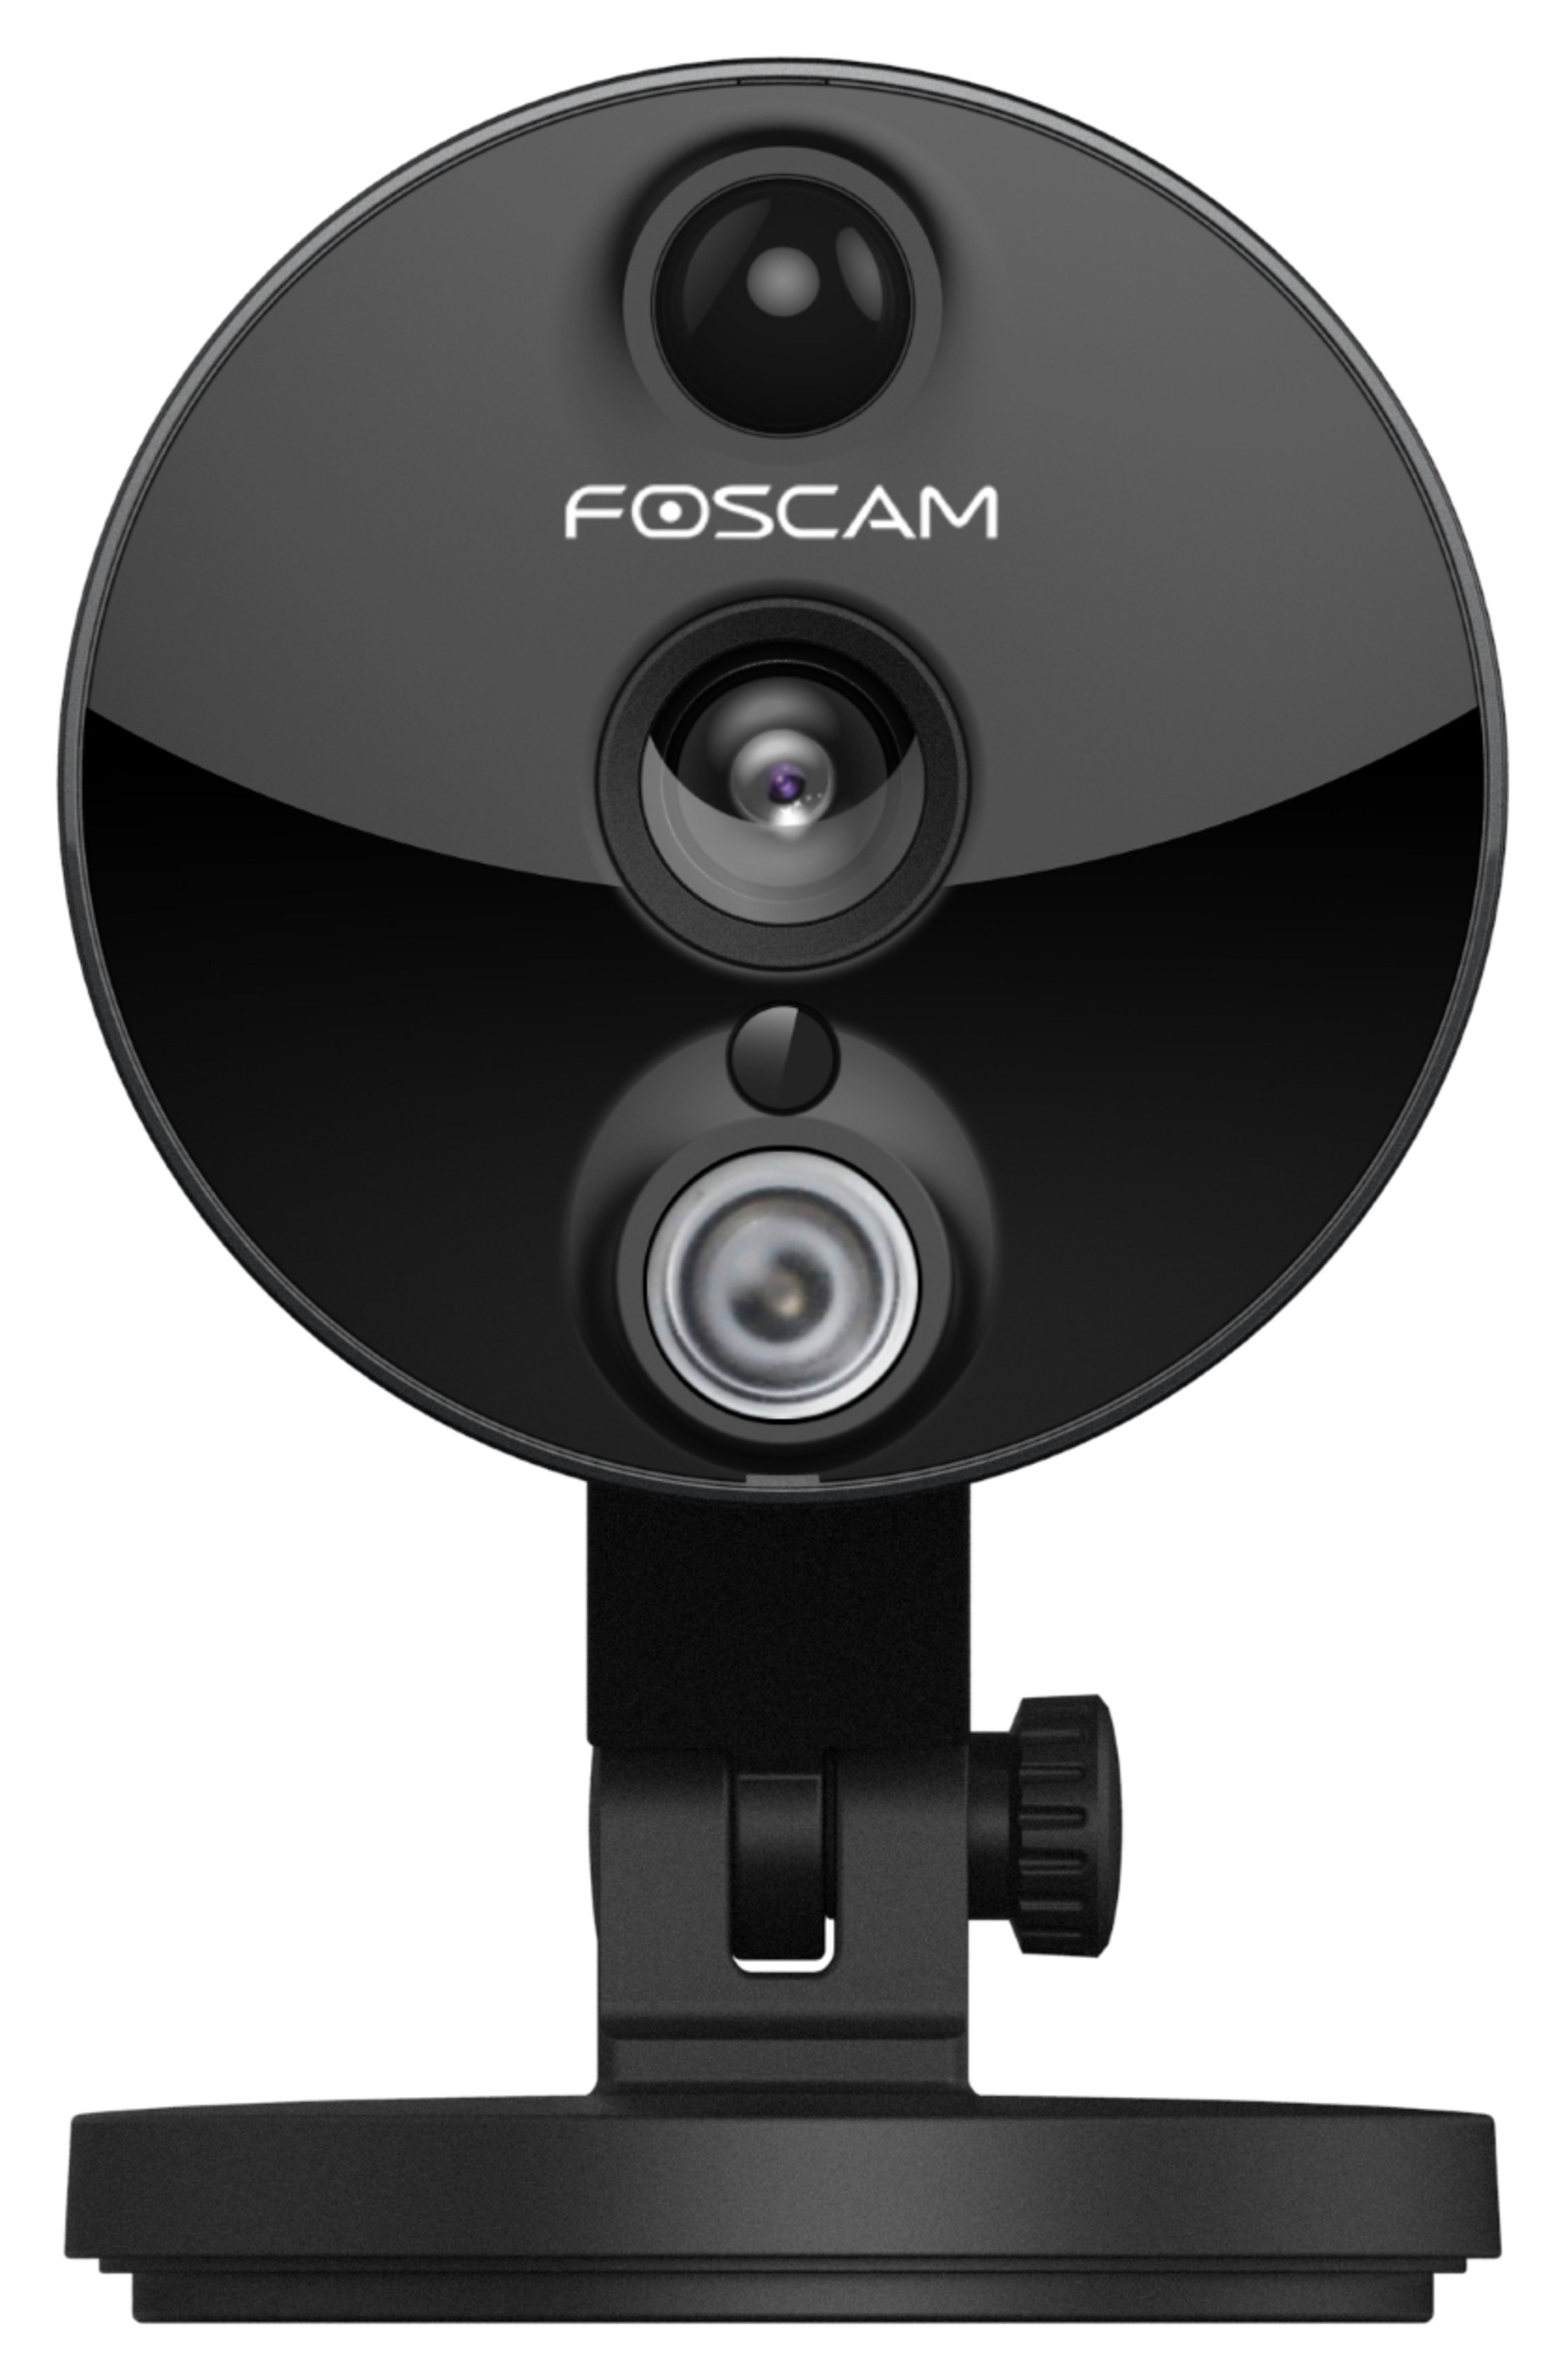 Image of Foscam C2 Security System - Black